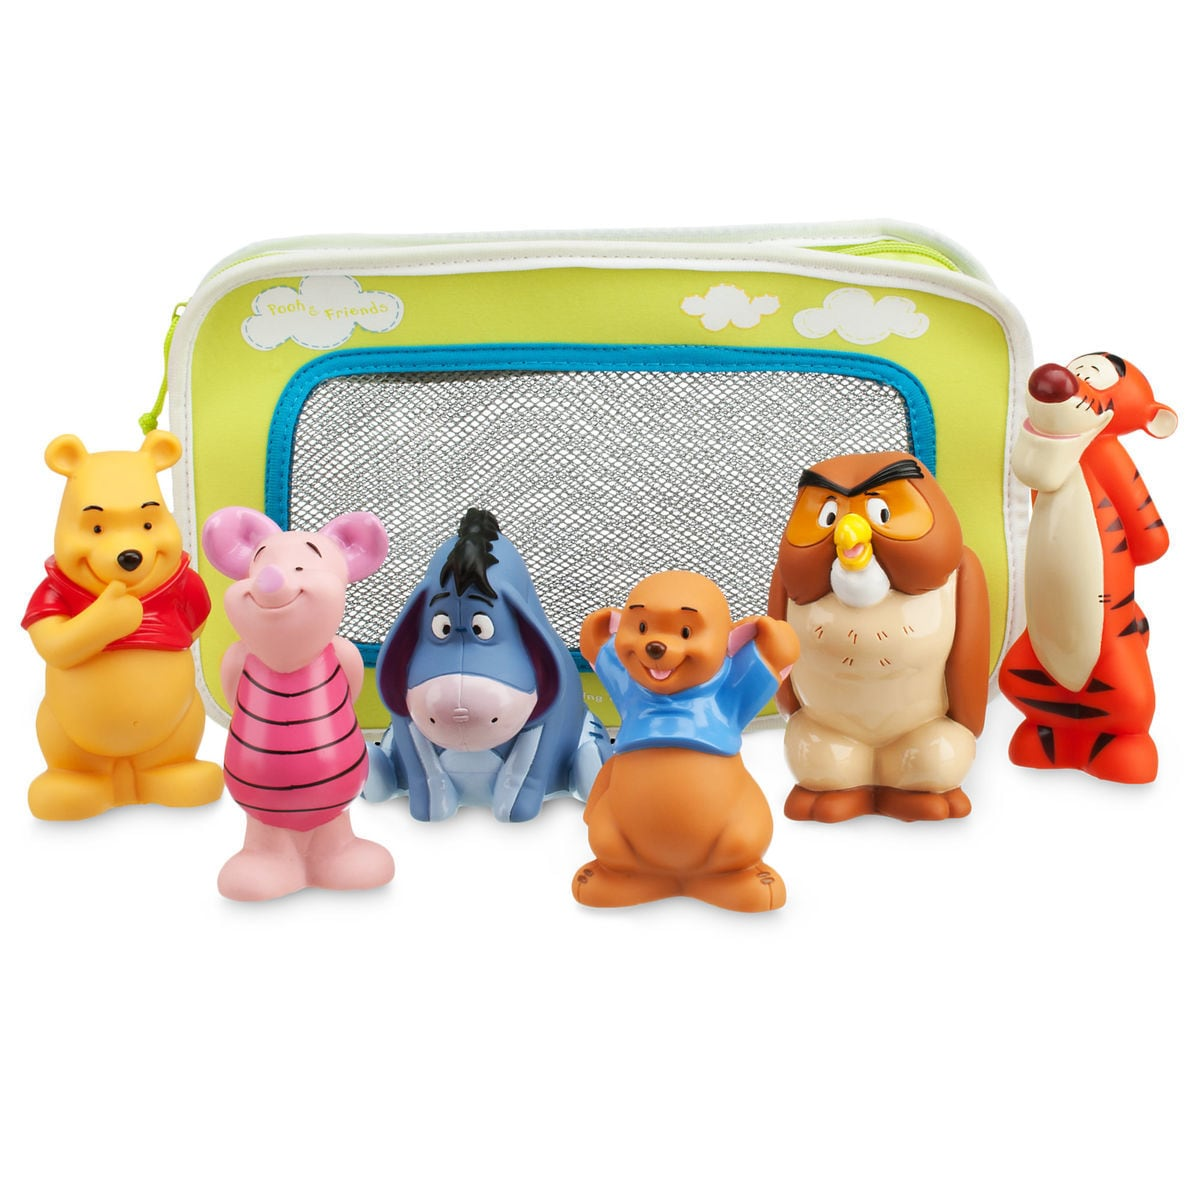 Winnie the Pooh and Pals Bath Toy Set for Baby   shopDisney